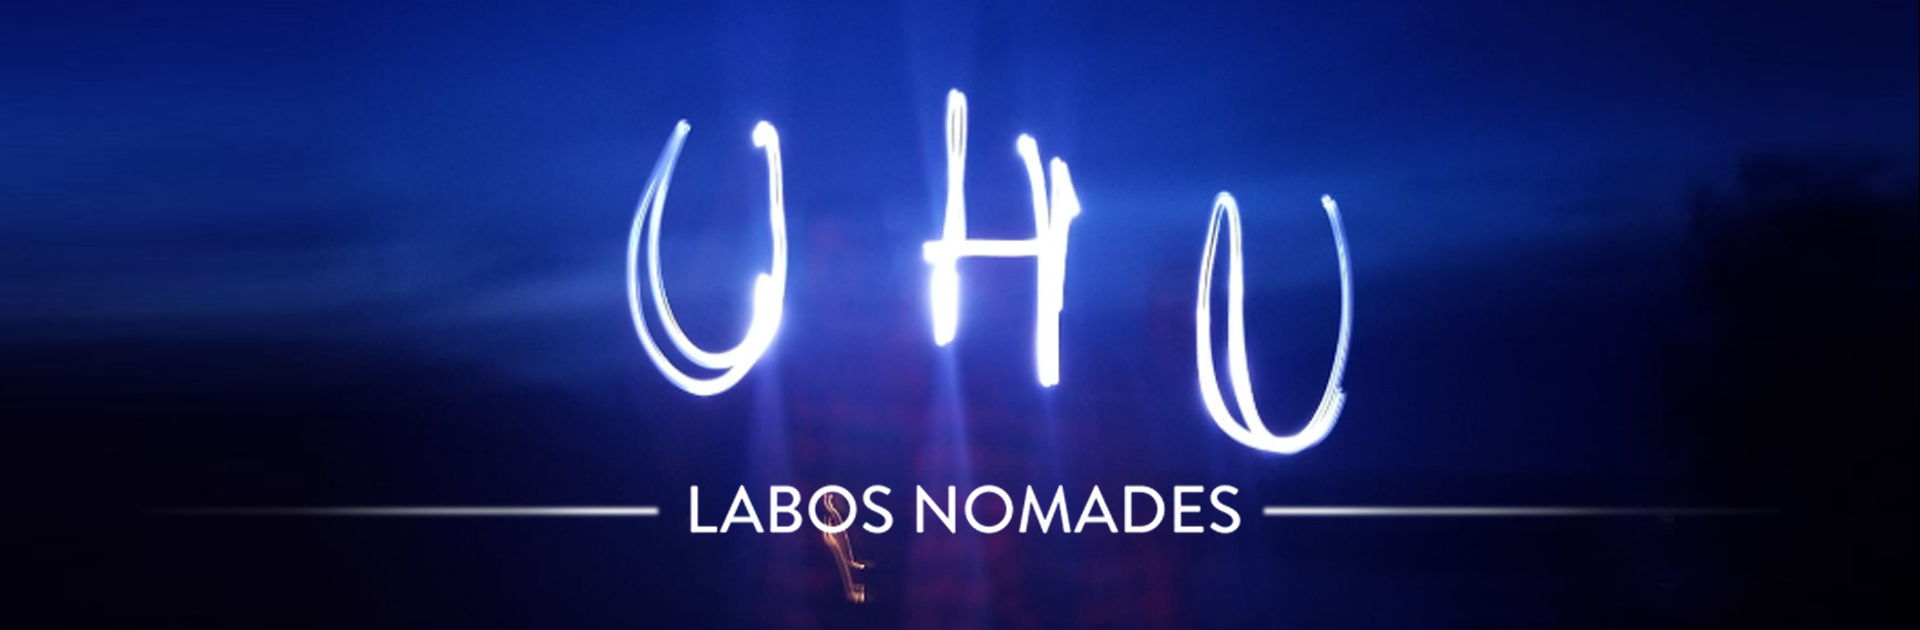 Behaviour Renews its Support of Uhu labos nomades